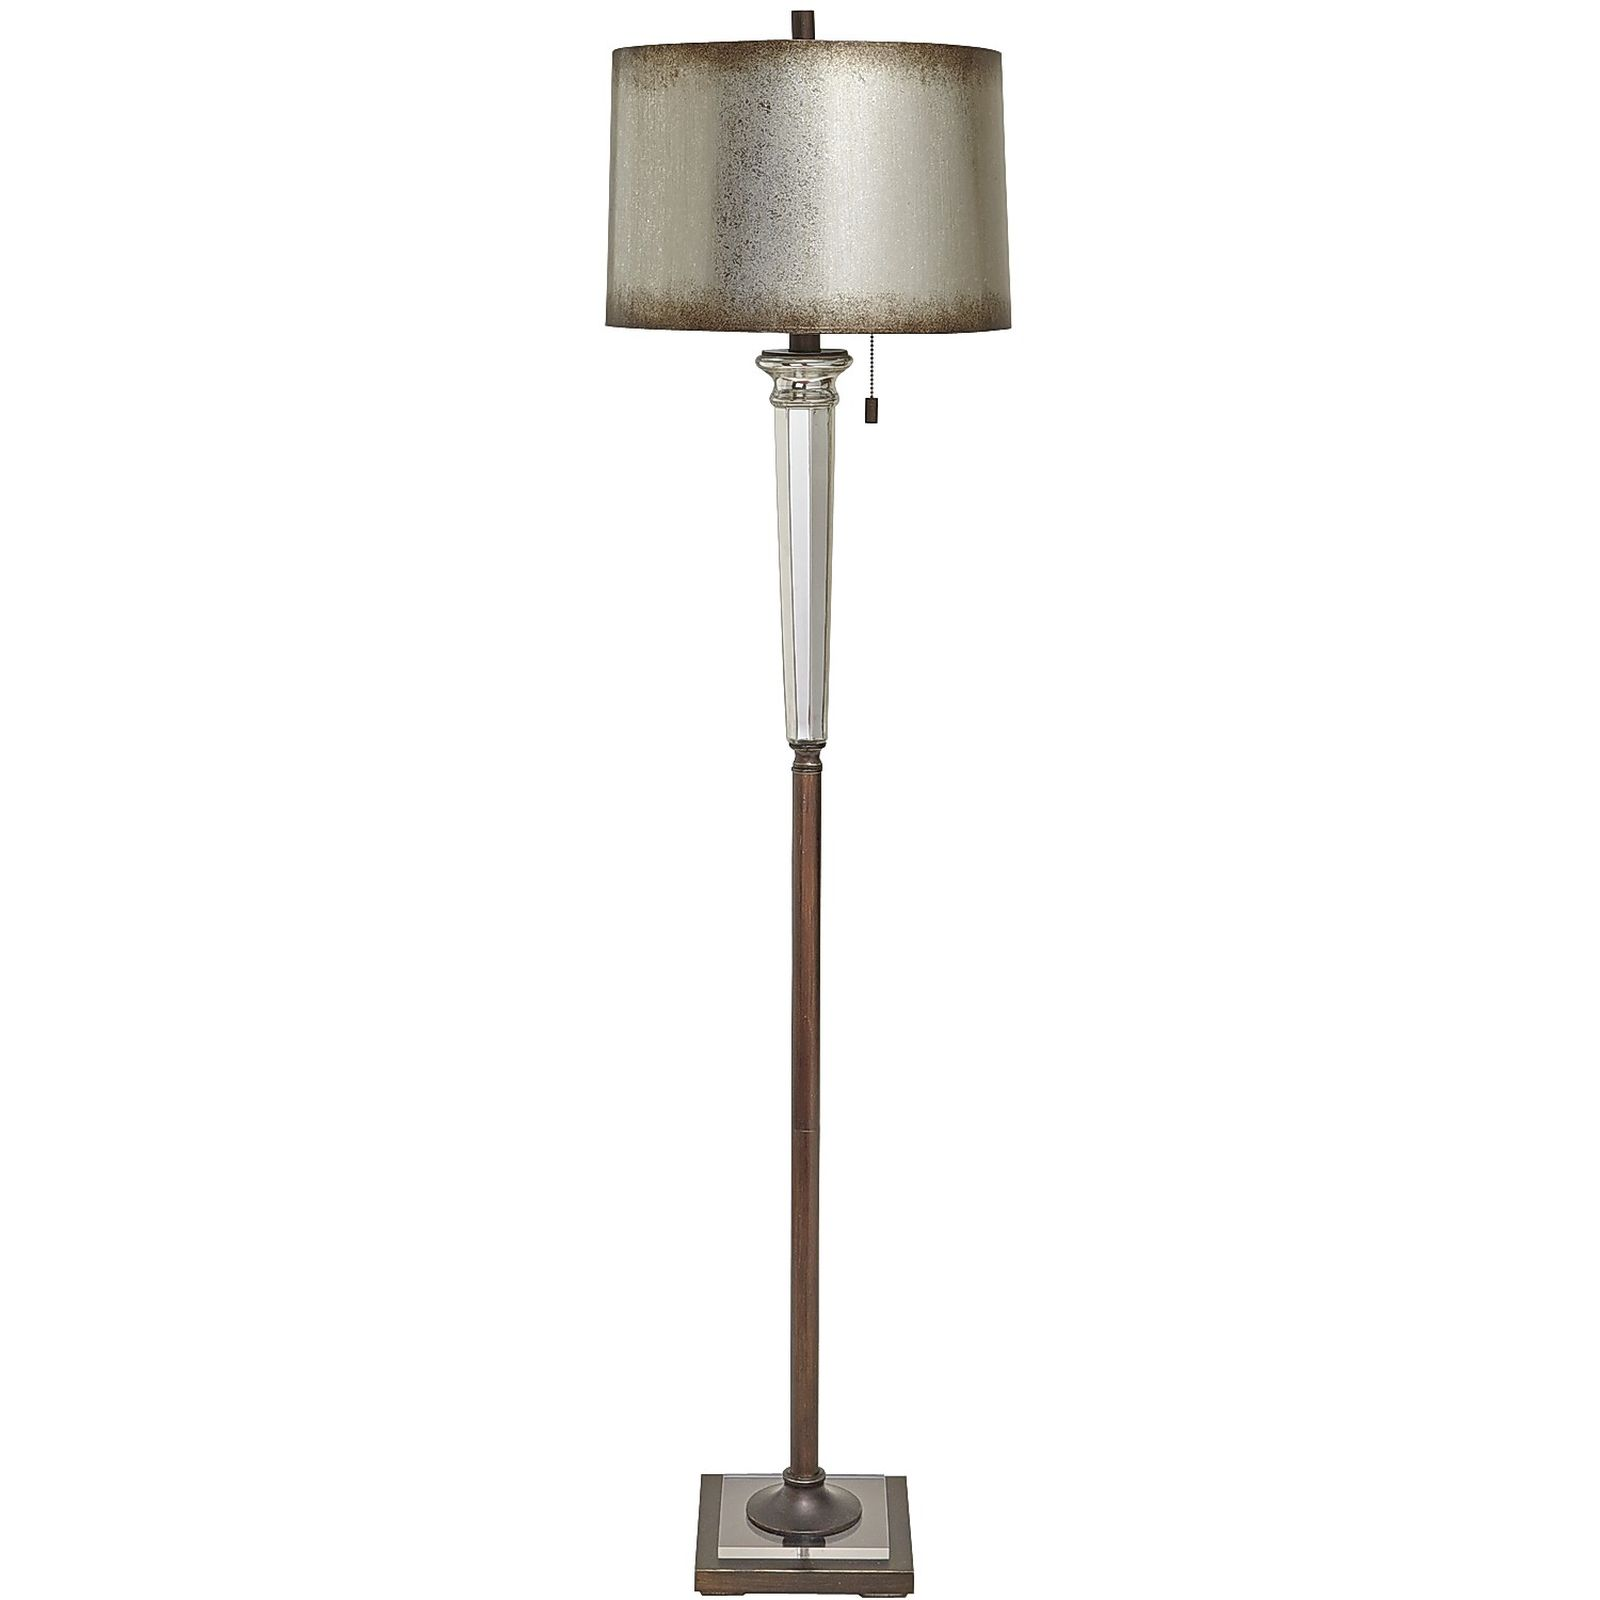 Gabrielle floor lamp pier 1 imports 626564 on wookmark gabrielle floor lamp pier 1 imports aloadofball Images